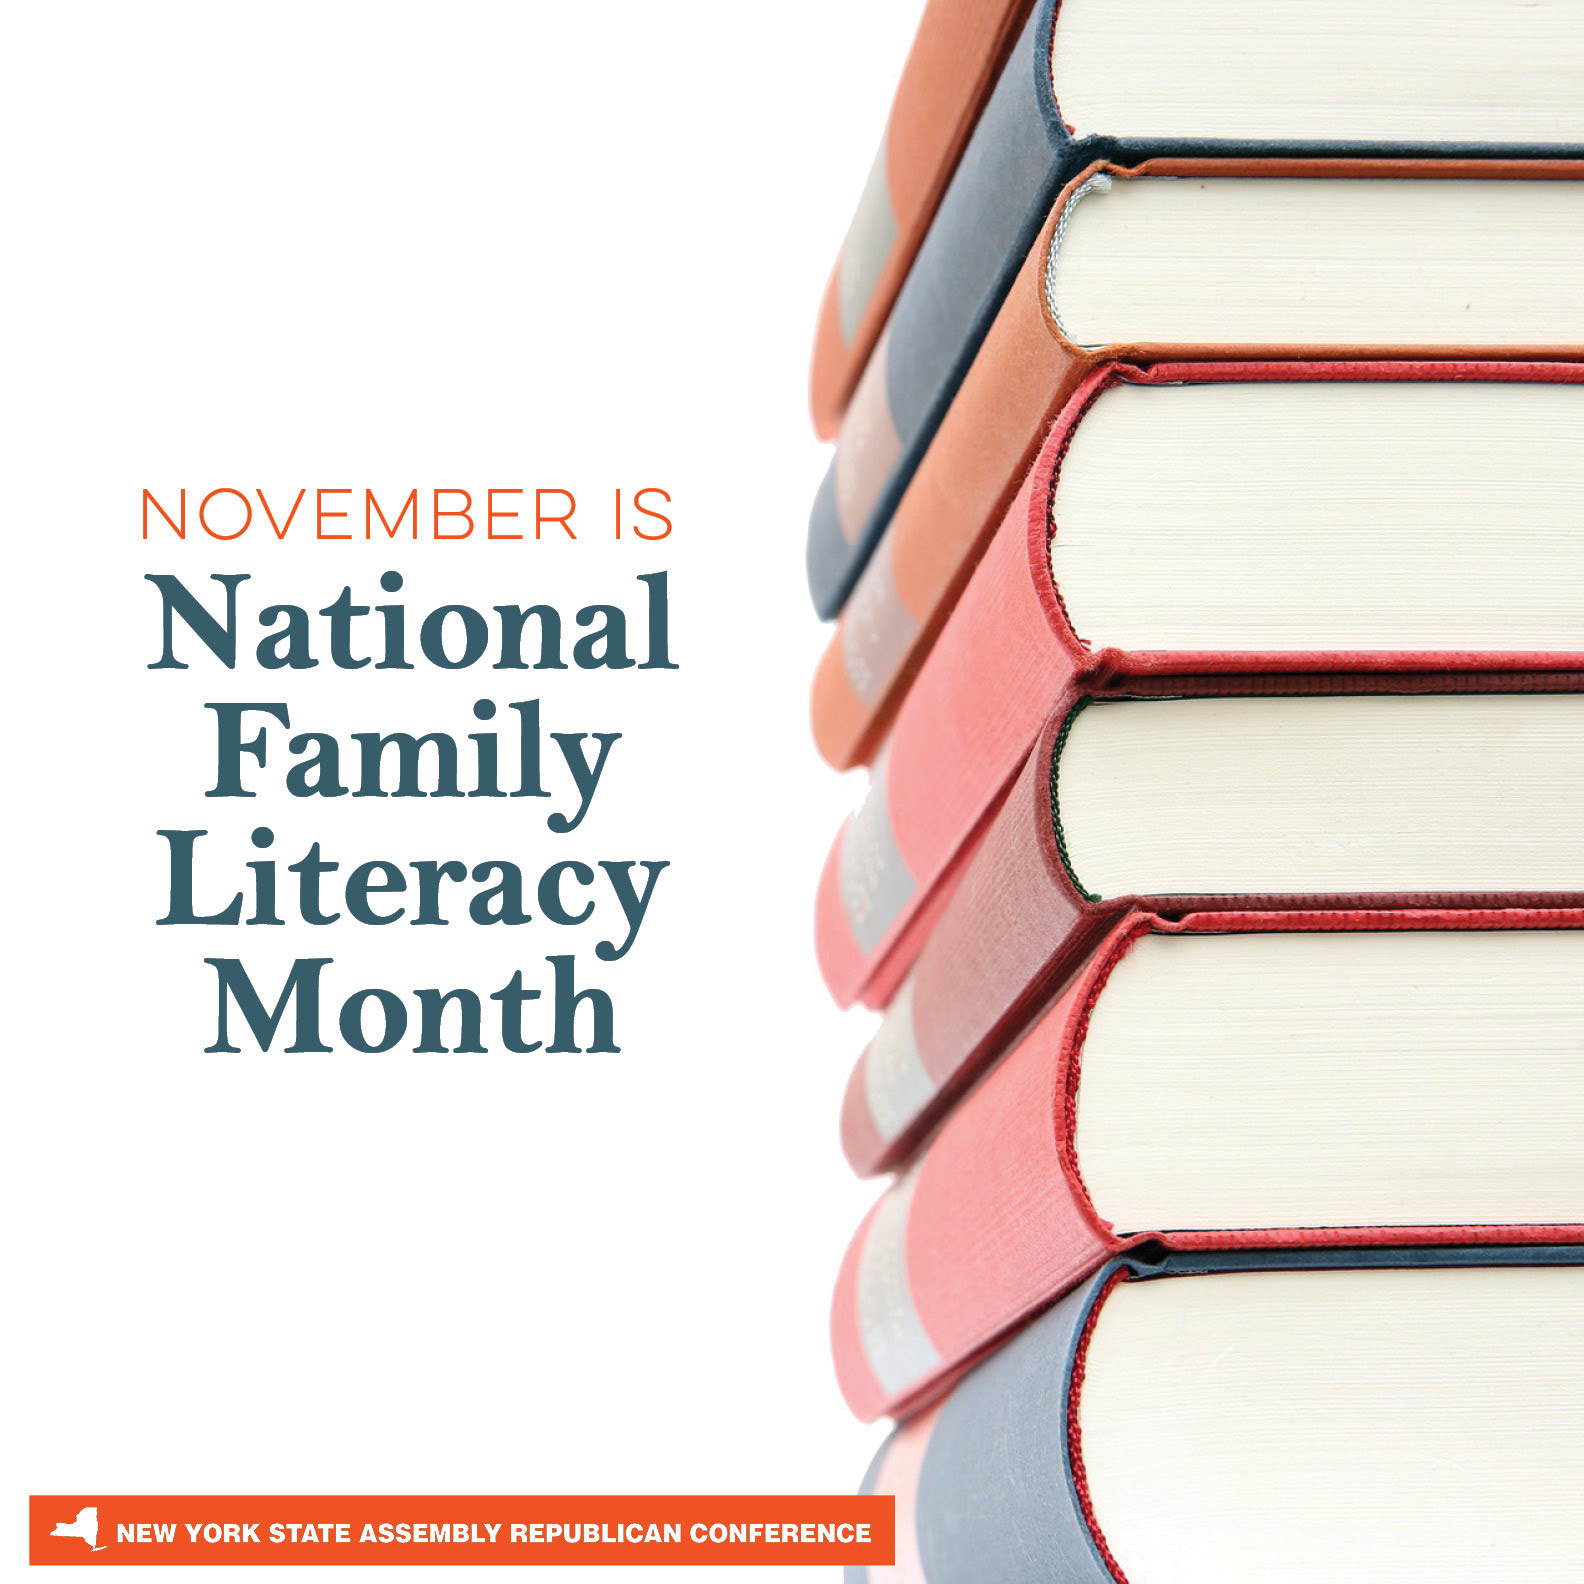 Family_Literacy_Month11-1-2020.jpg